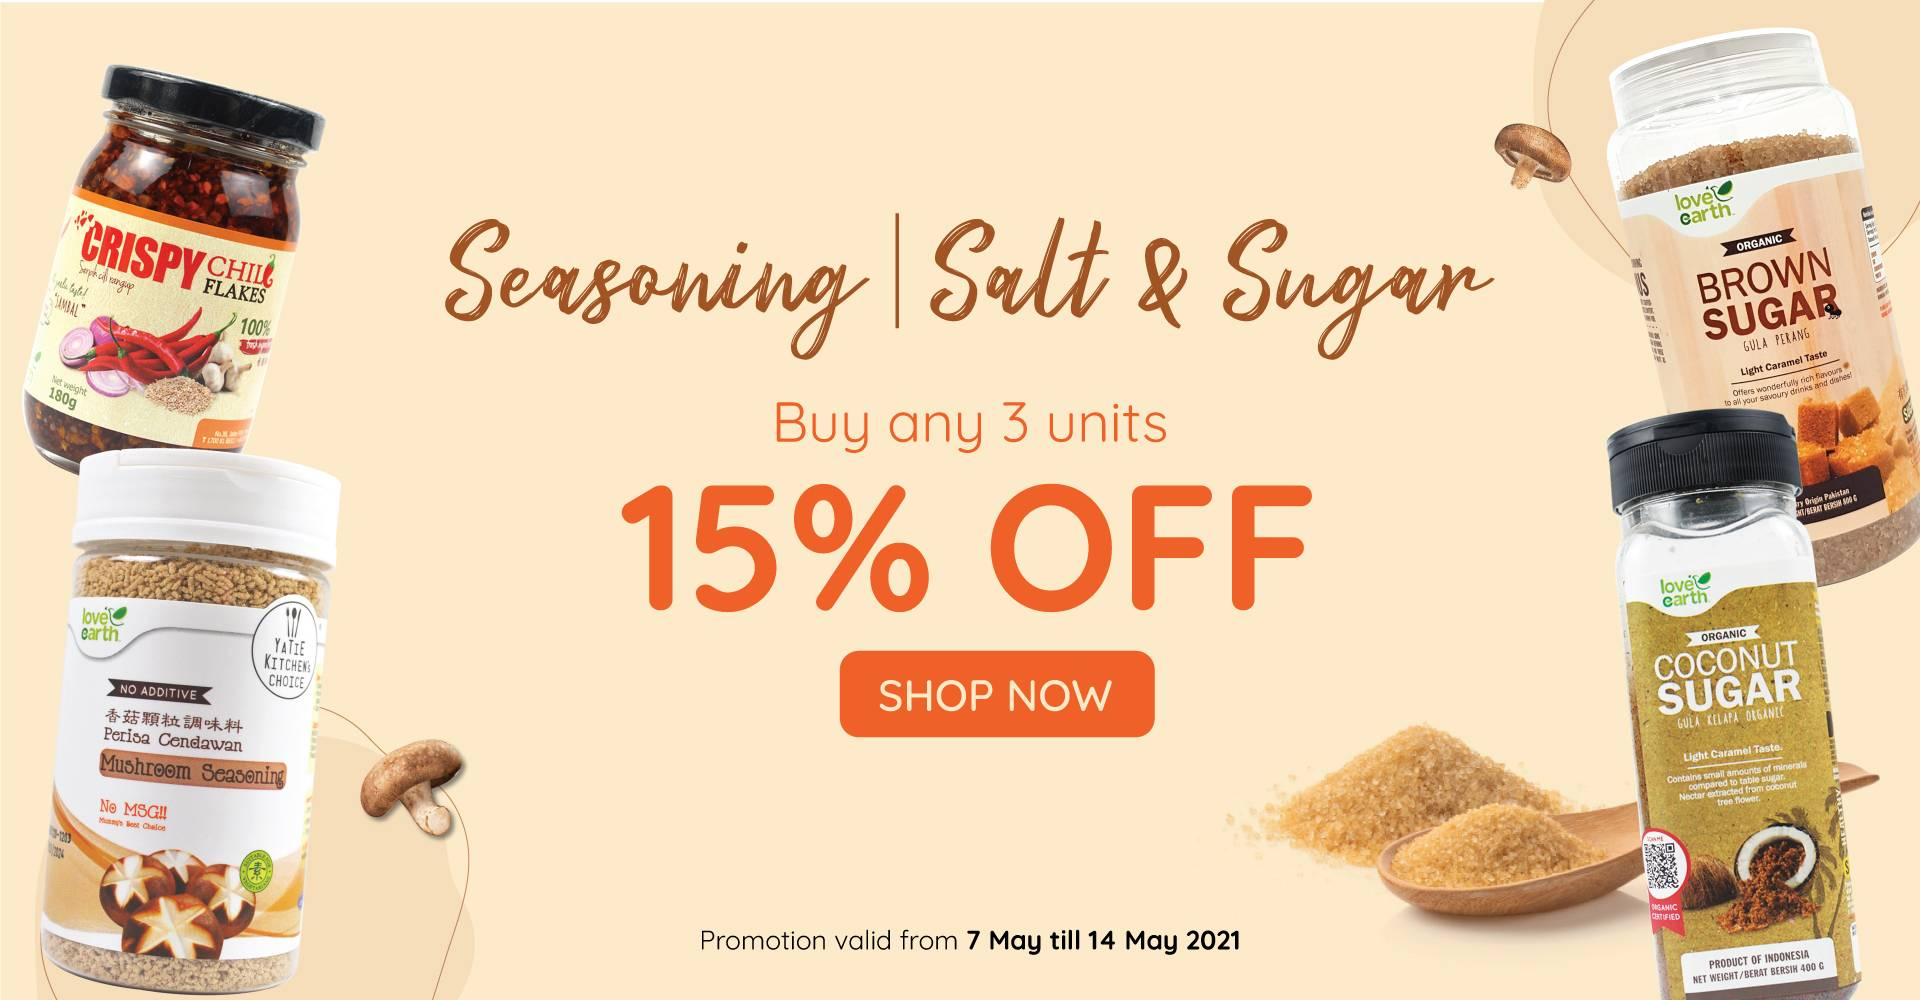 Seasoning + Salt & Sugar - Buy any 3 get 15% off